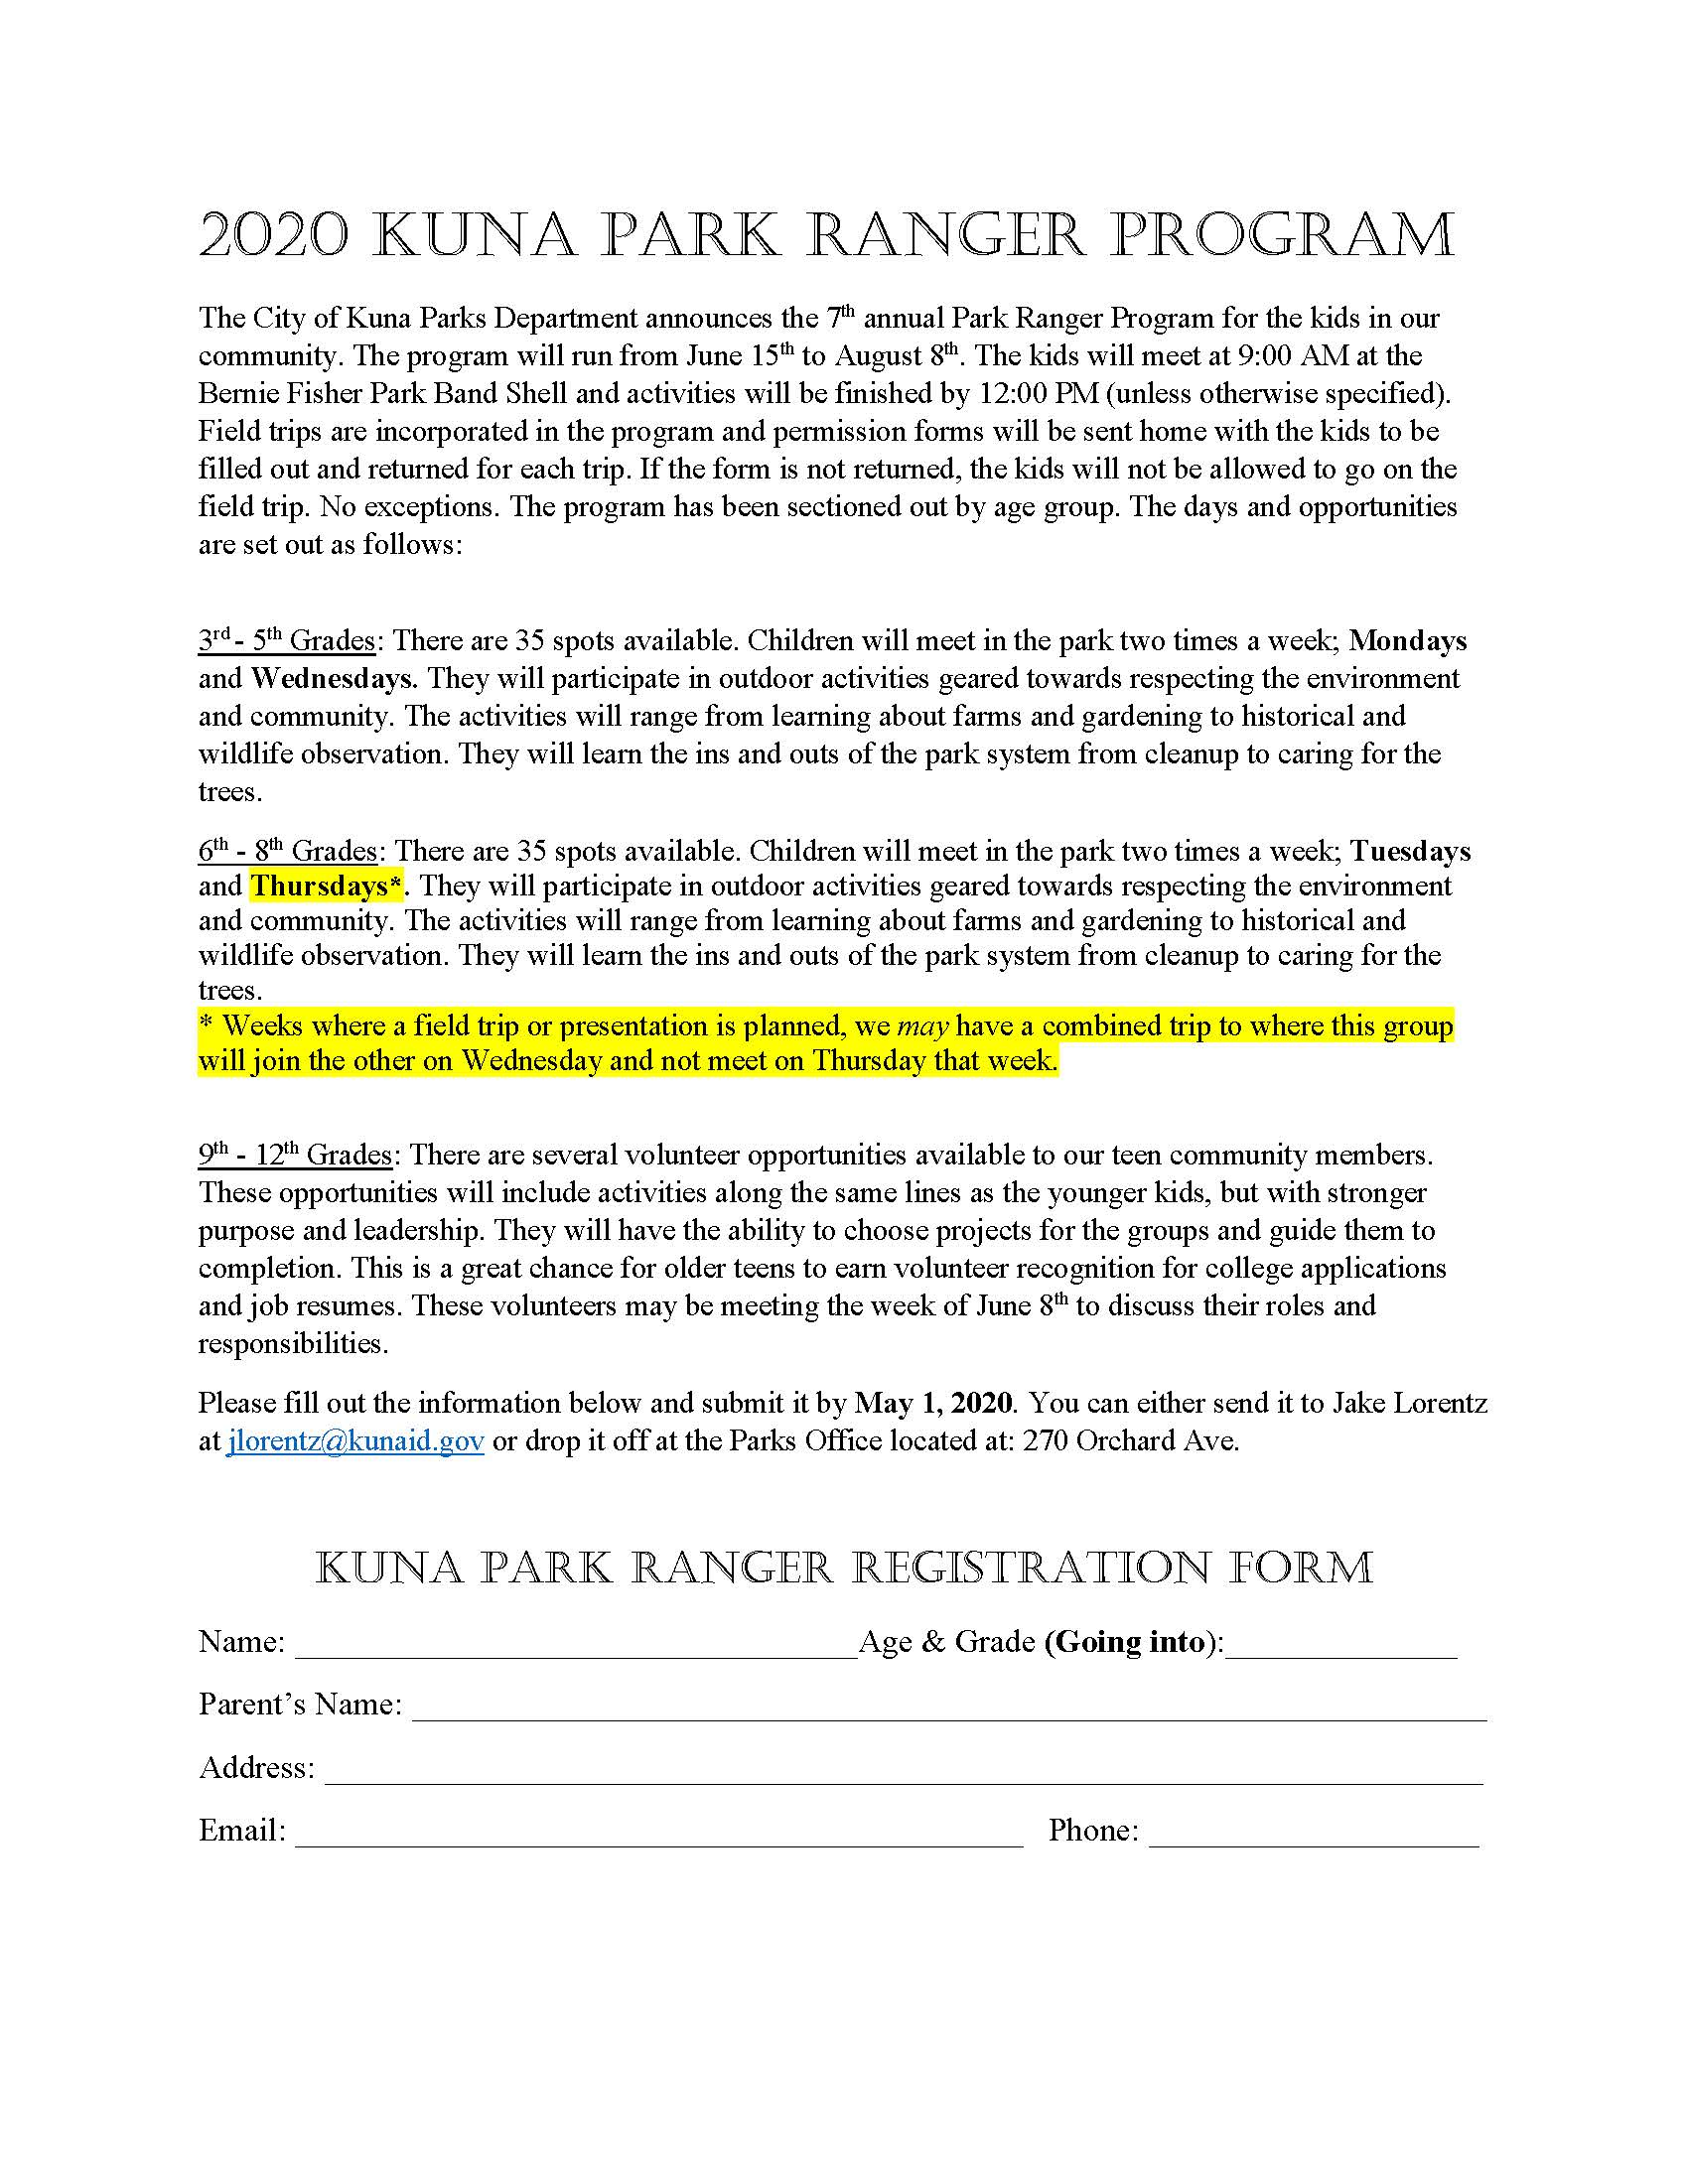 Park Rangers 2020 Registration Form (JPEG)